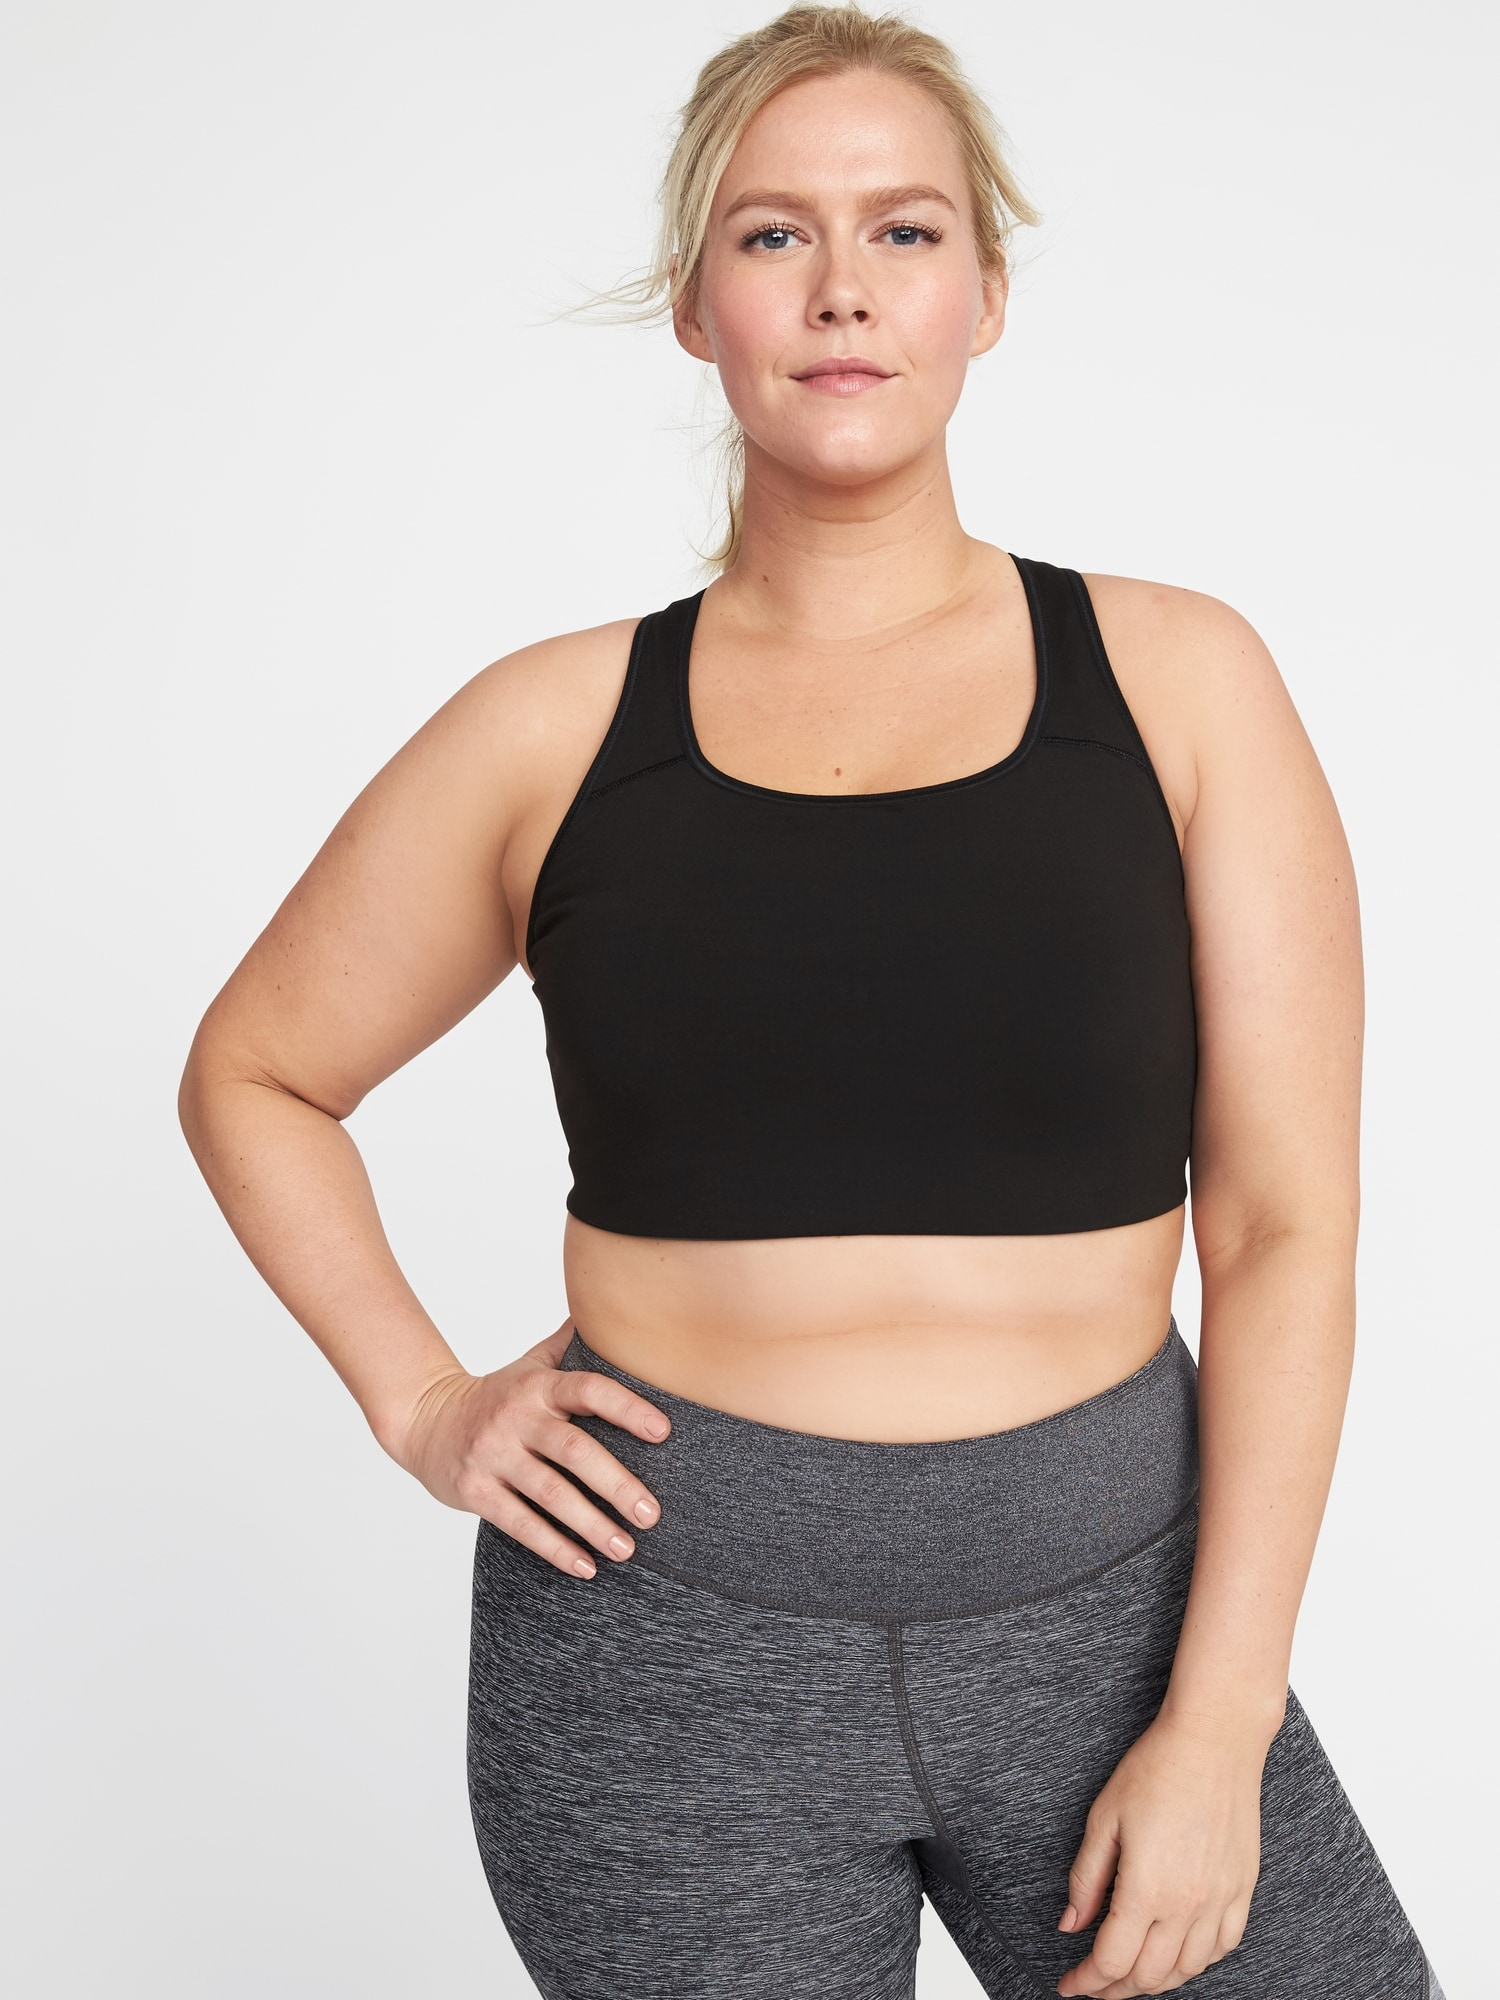 e93a66e1512c8 Medium Support Plus-Size Racerback Sports Bra by Old Navy - Proud Mary